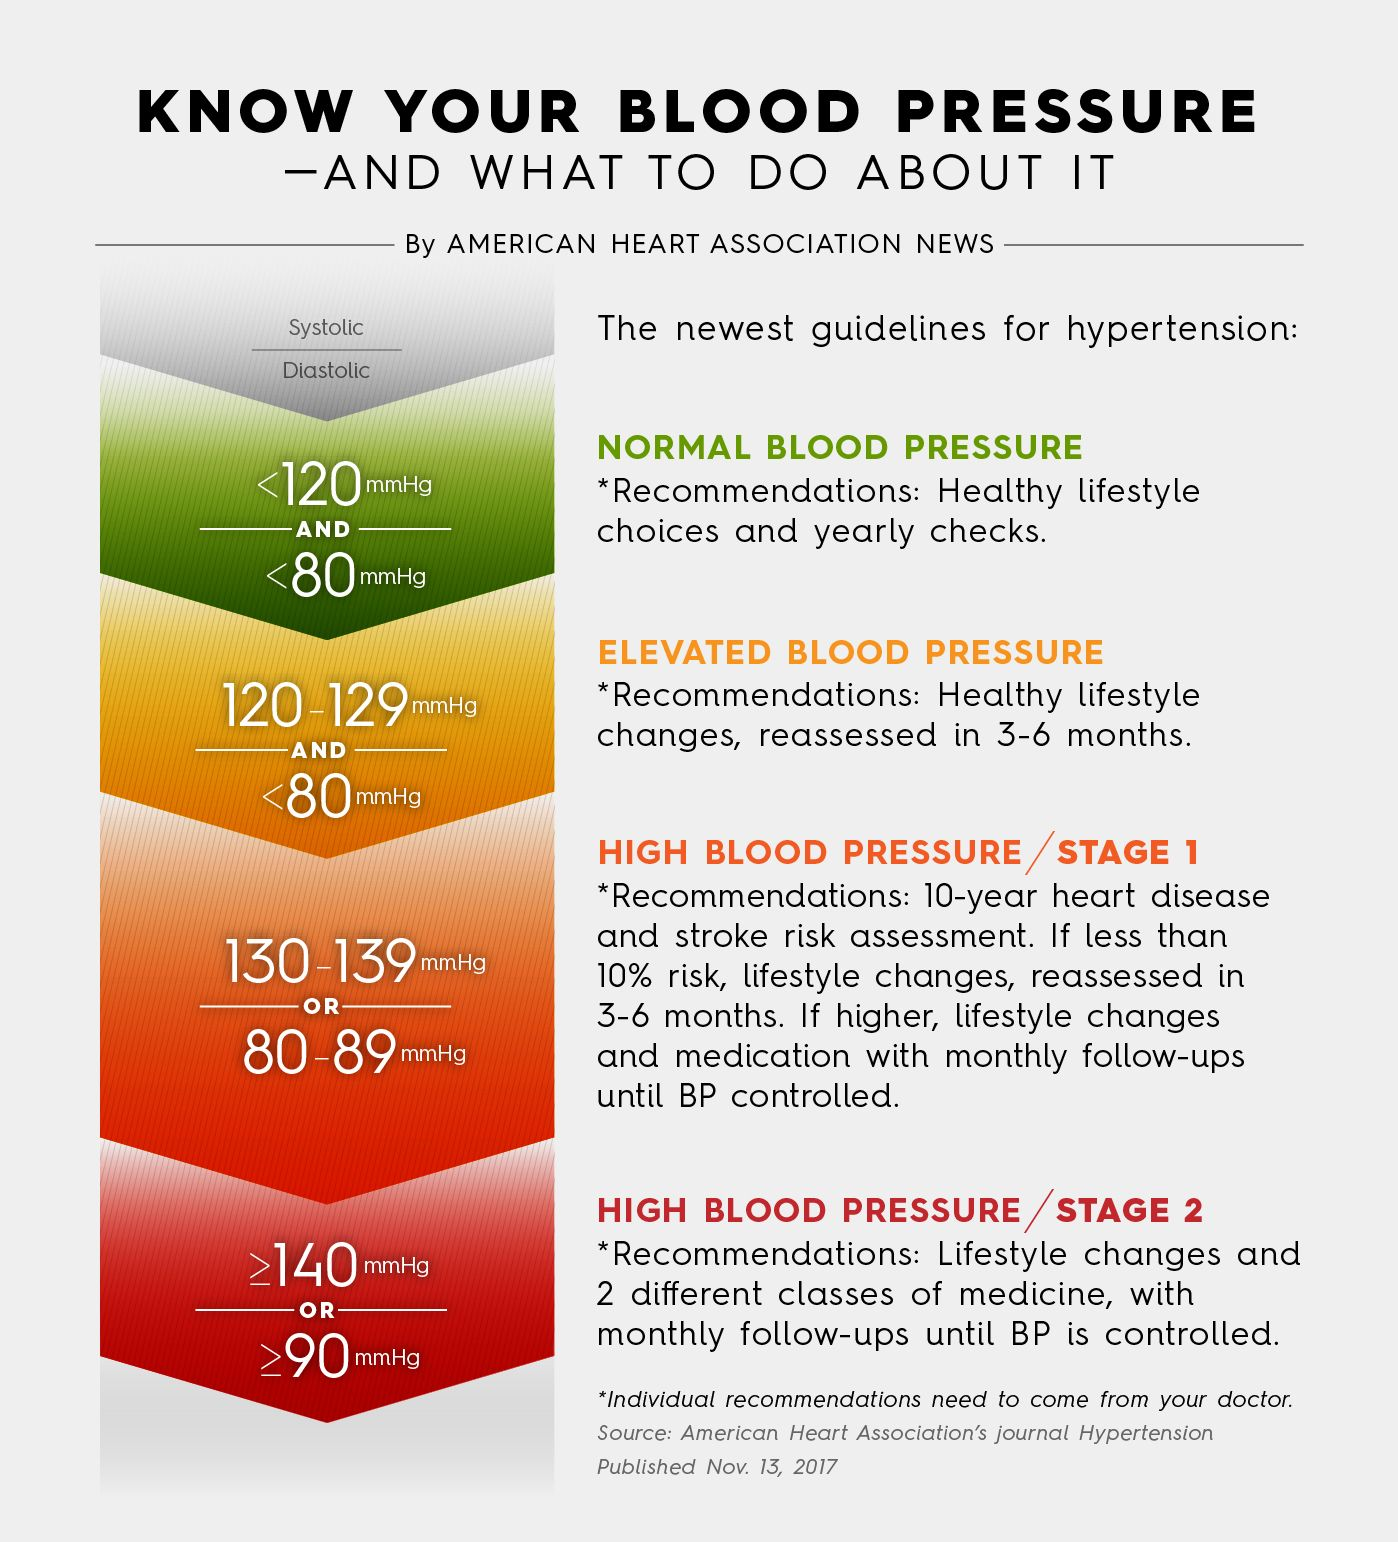 High blood pressure is redefined as 130, not 140: U.S.  guidelines